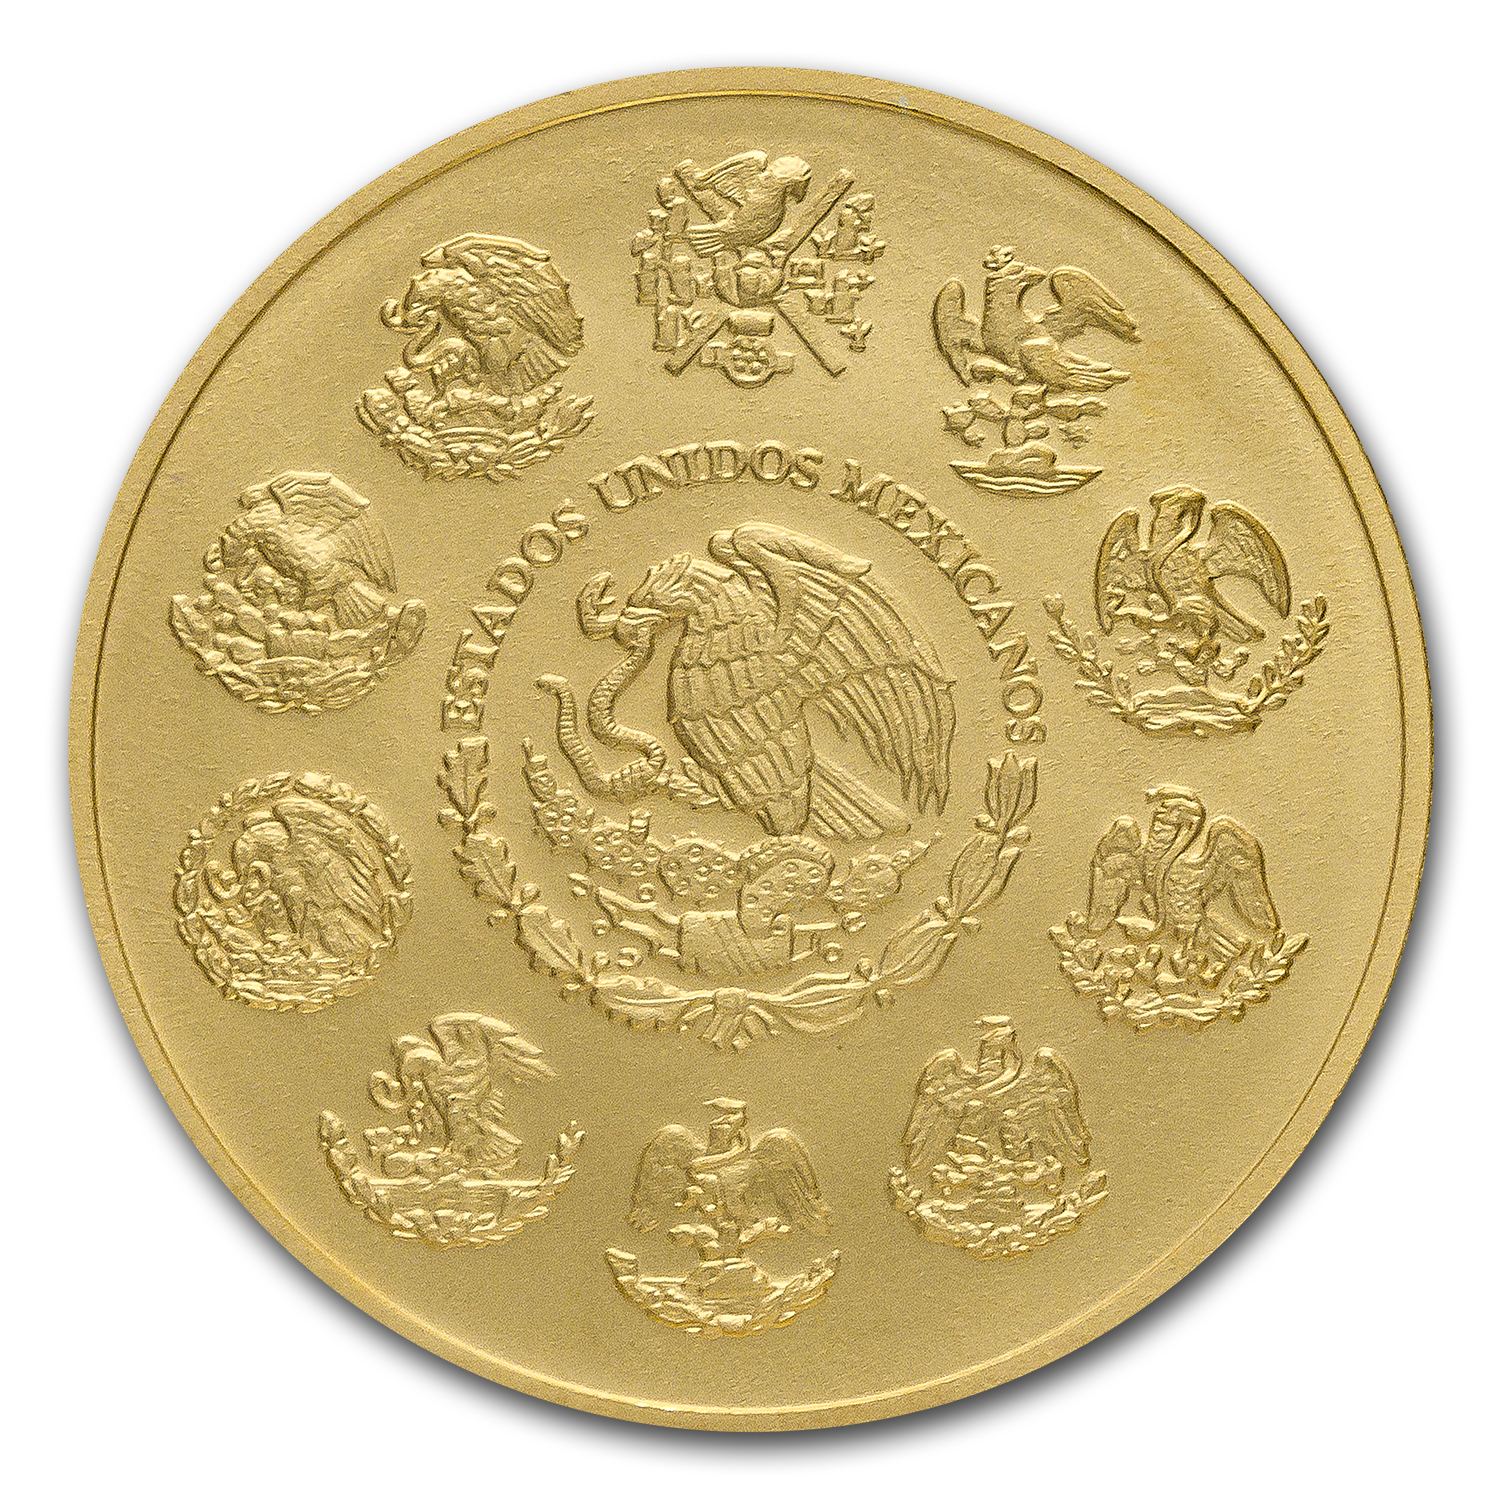 2012 Mexico 1 oz Gold Libertad BU